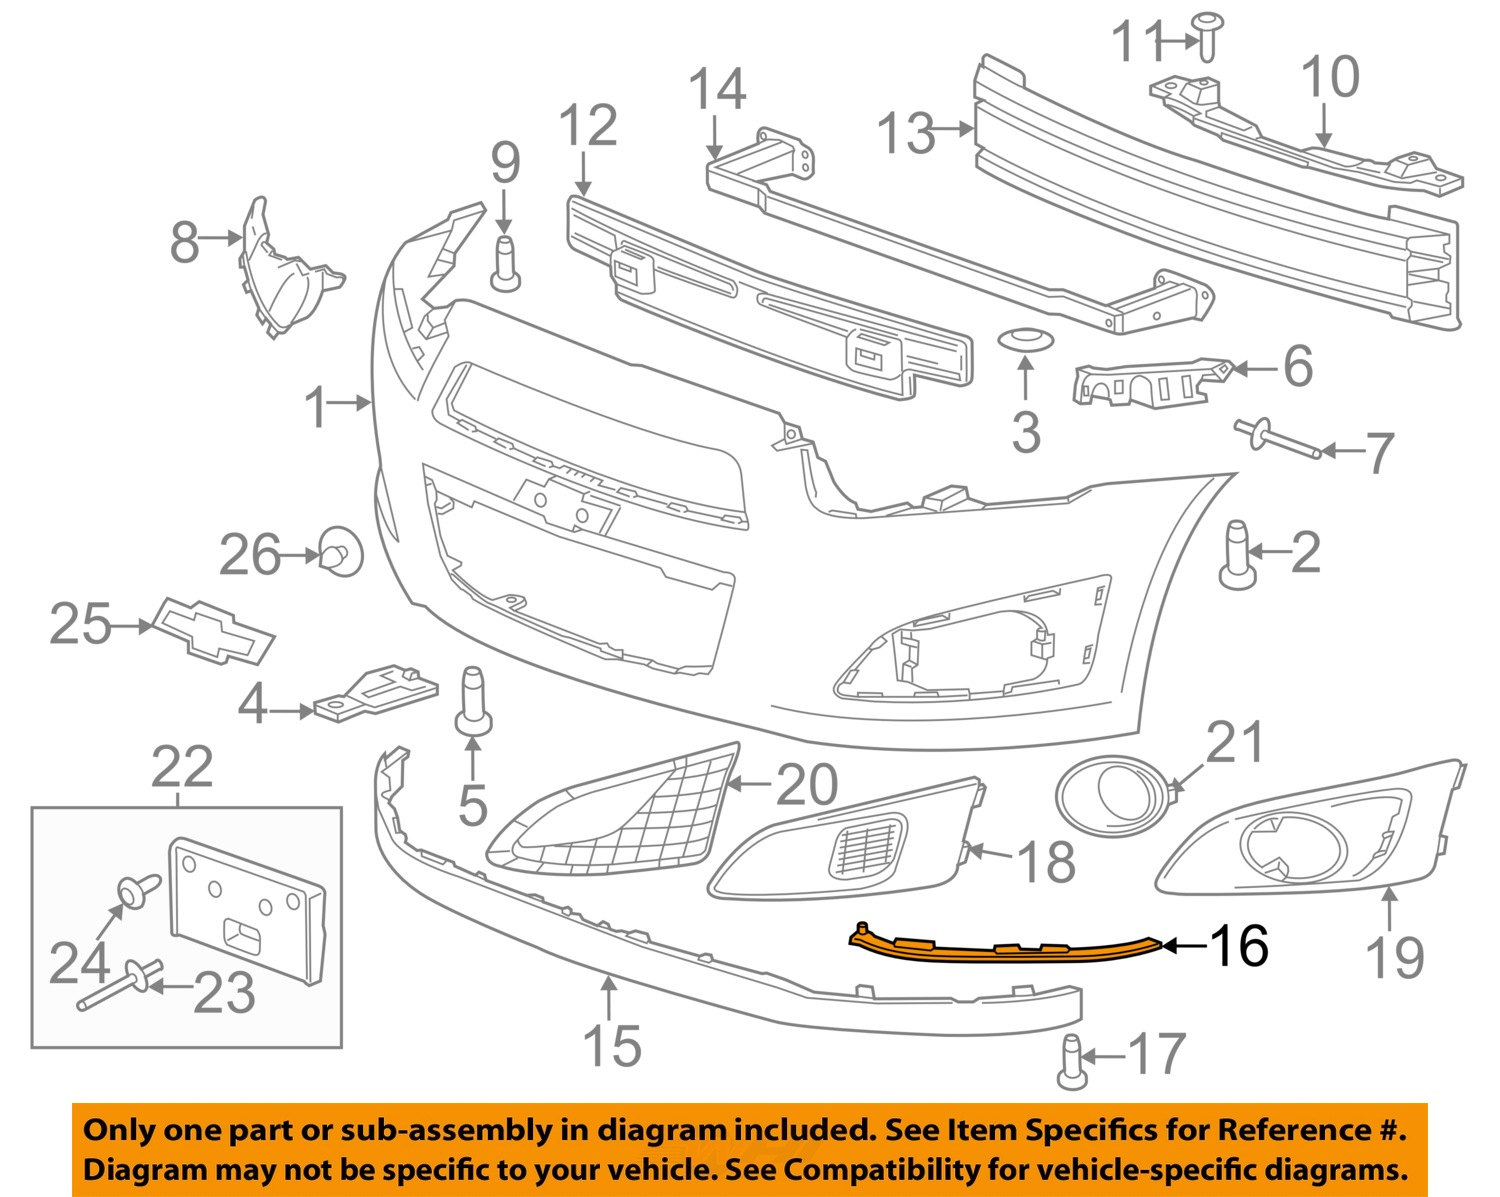 Chevrolet Gm Oem Front Bumper Grille Grill Lower Deflector